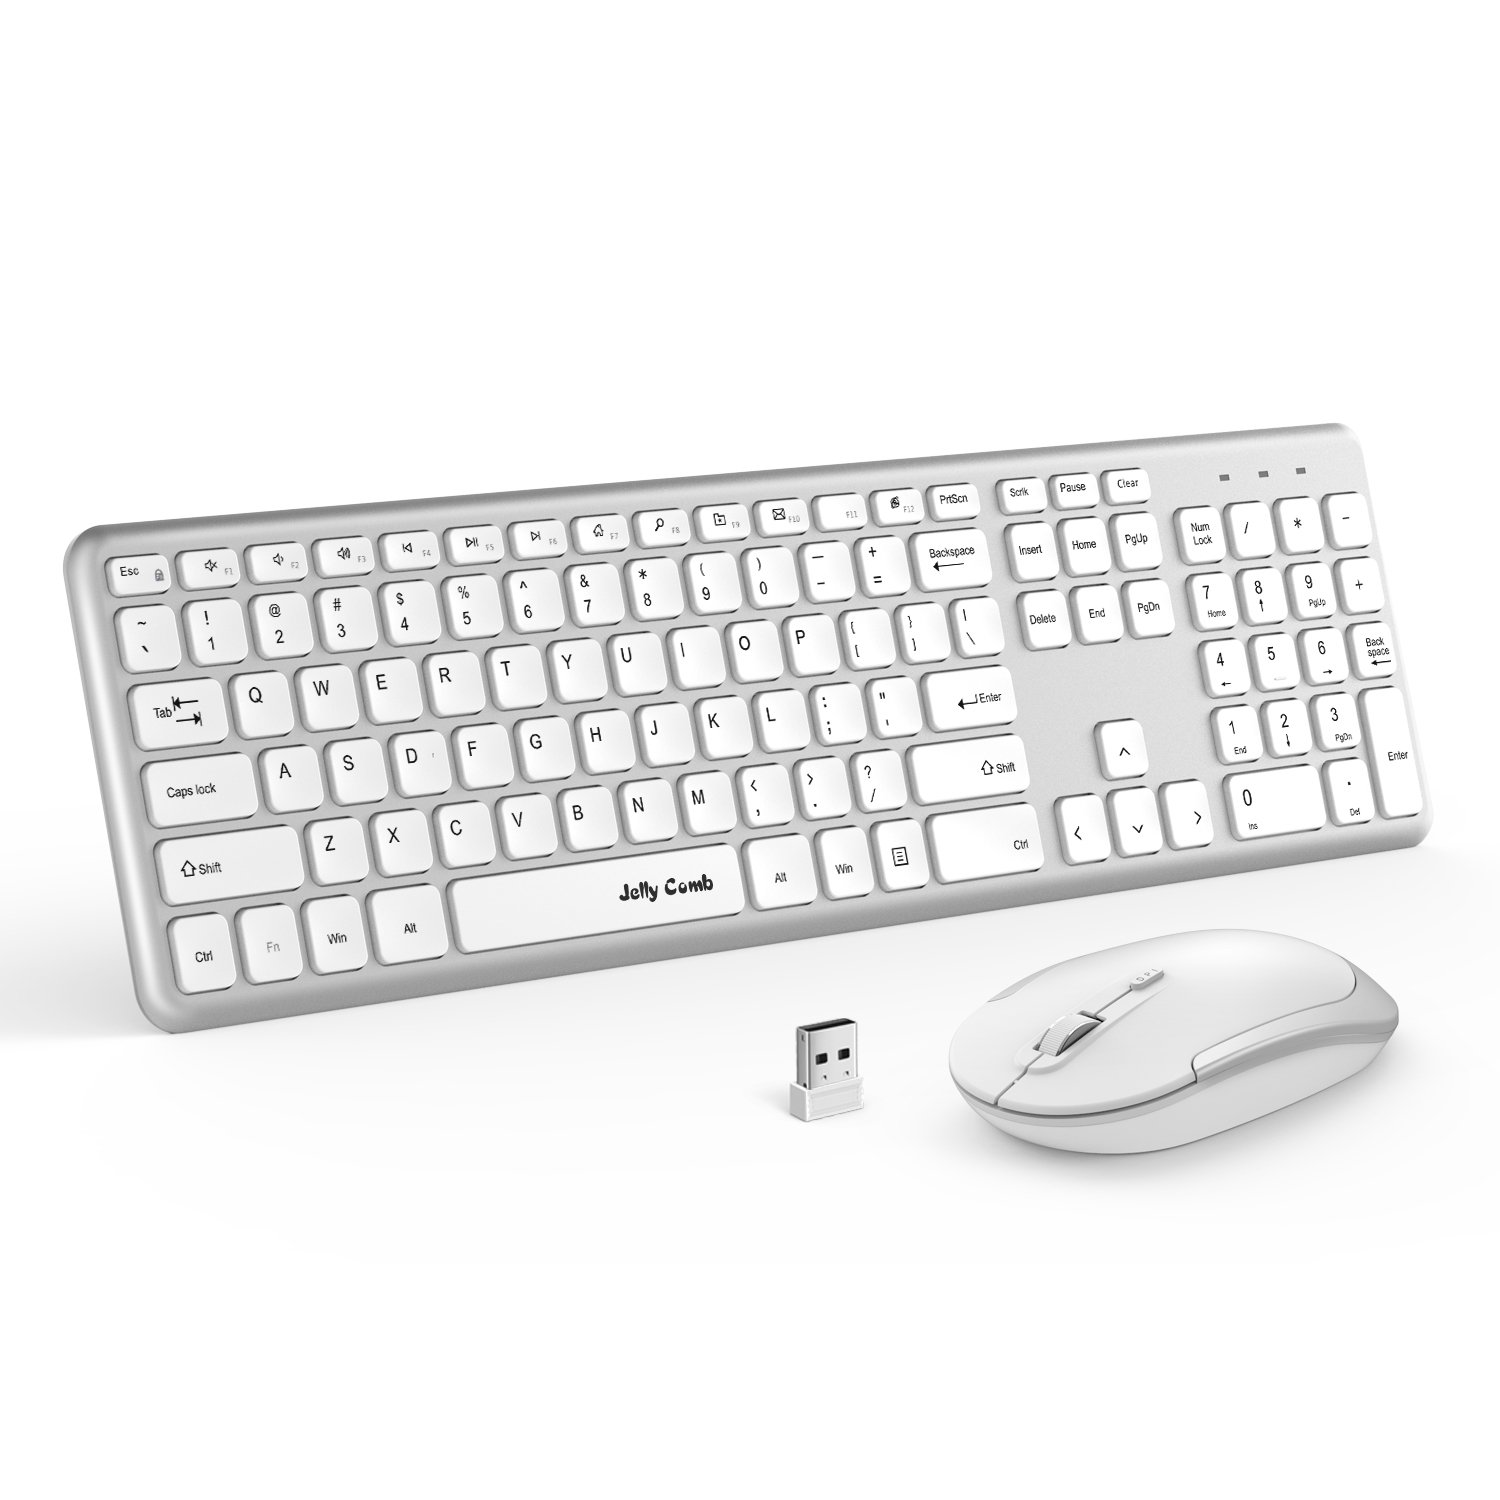 Wireless Keyboard Mouse, Jelly Comb 2.4GHz Ultra Thin Full Size Wireless Keyboard and Mouse Combo Set with Number Pad for Computer, Laptop, PC, Desktop, Notebook, Windows (Full Size - White + Silver)